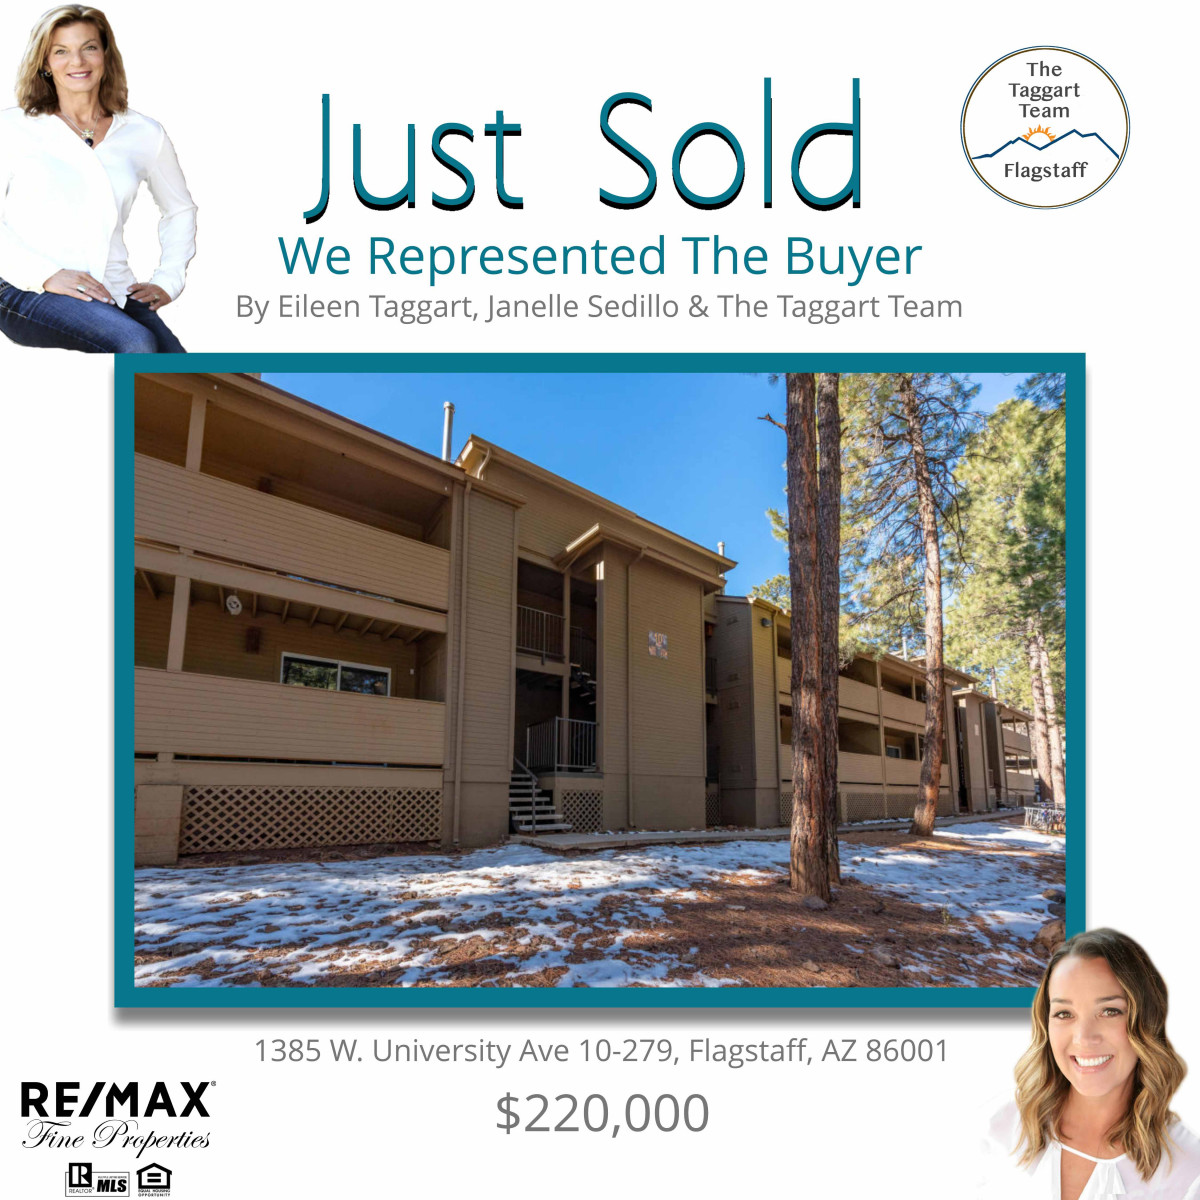 1385 W. University Ave. 10-279 Just Sold